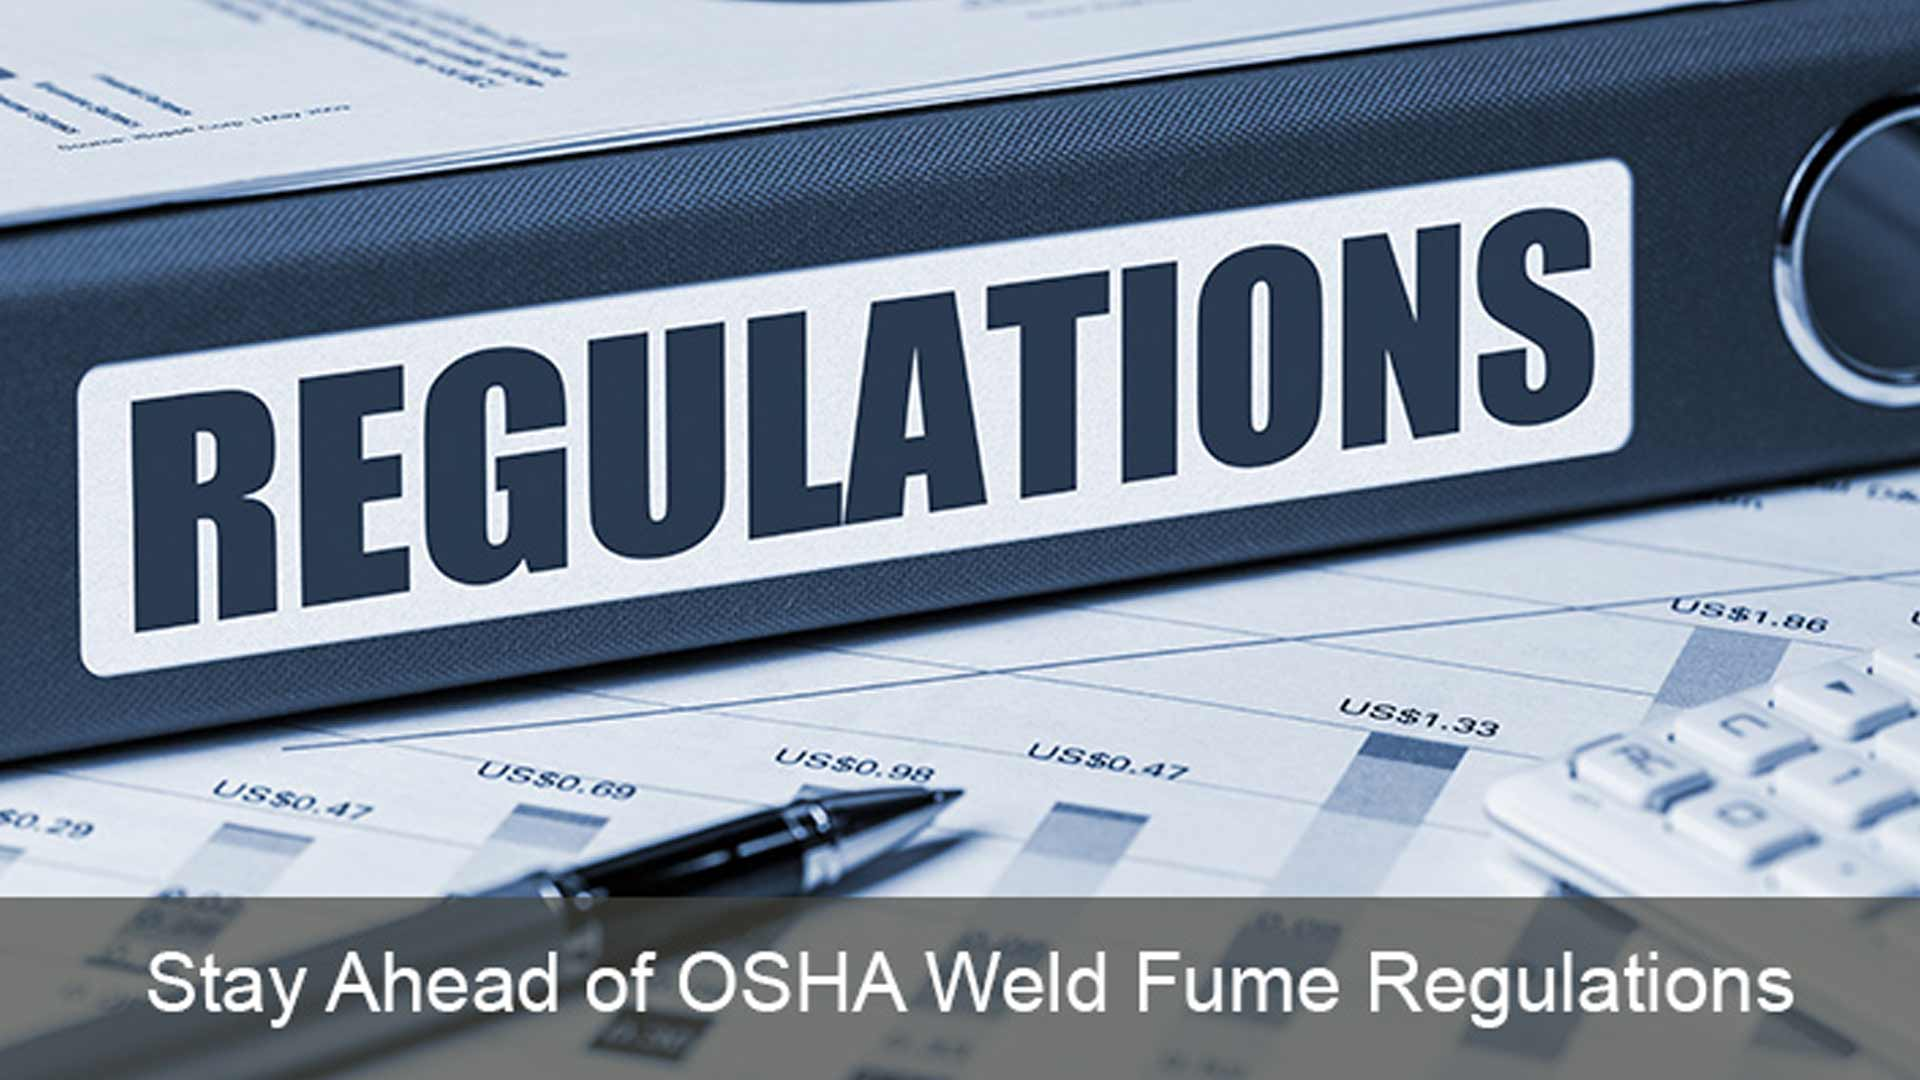 OSHA_Regulations_Weld_Fume.jpg